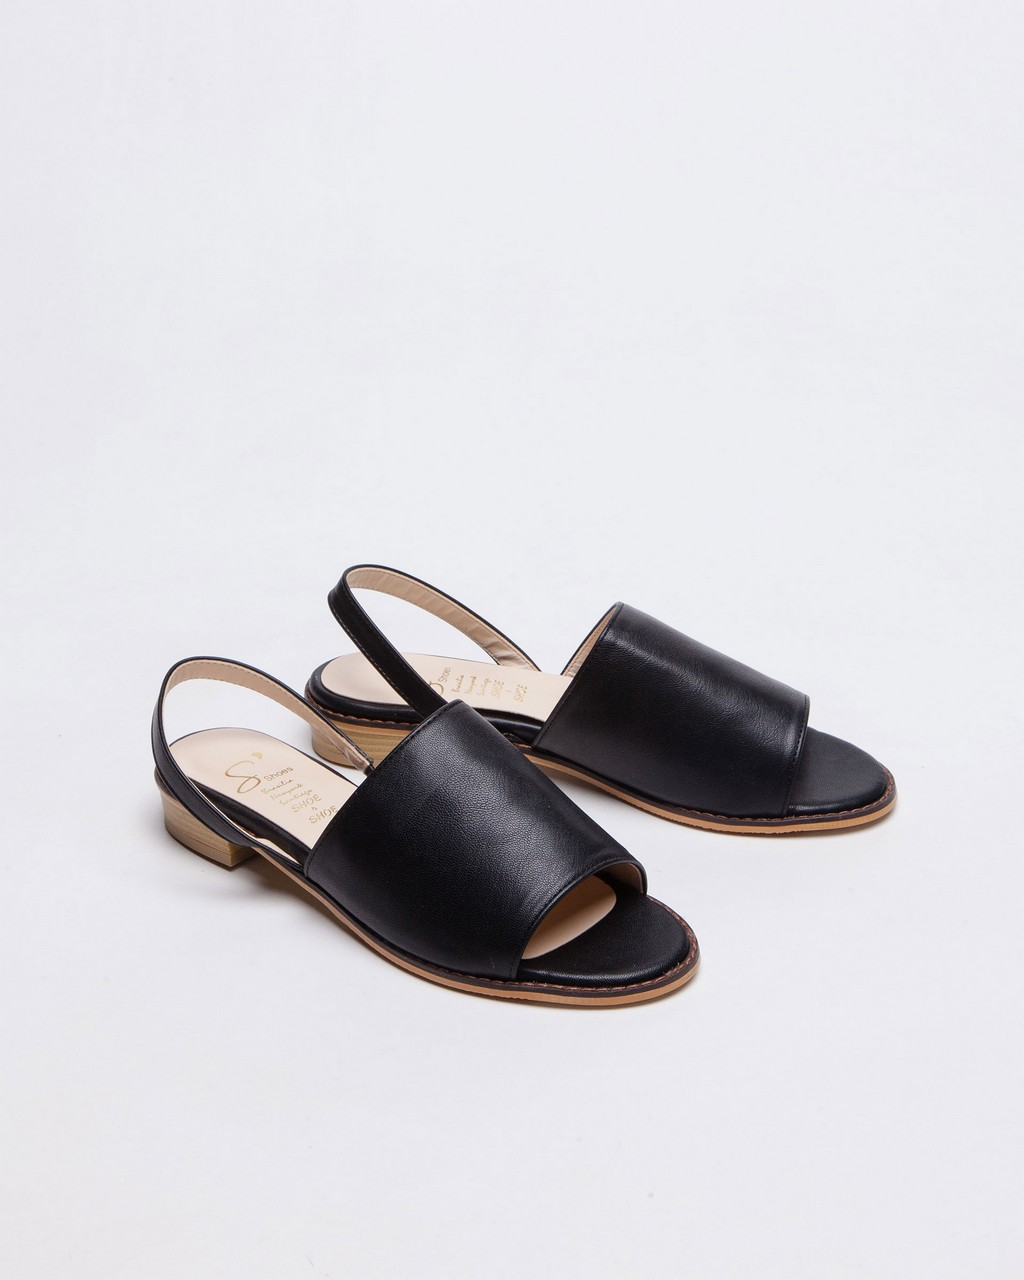 Tagtraume Overall-02 - Black(블랙)